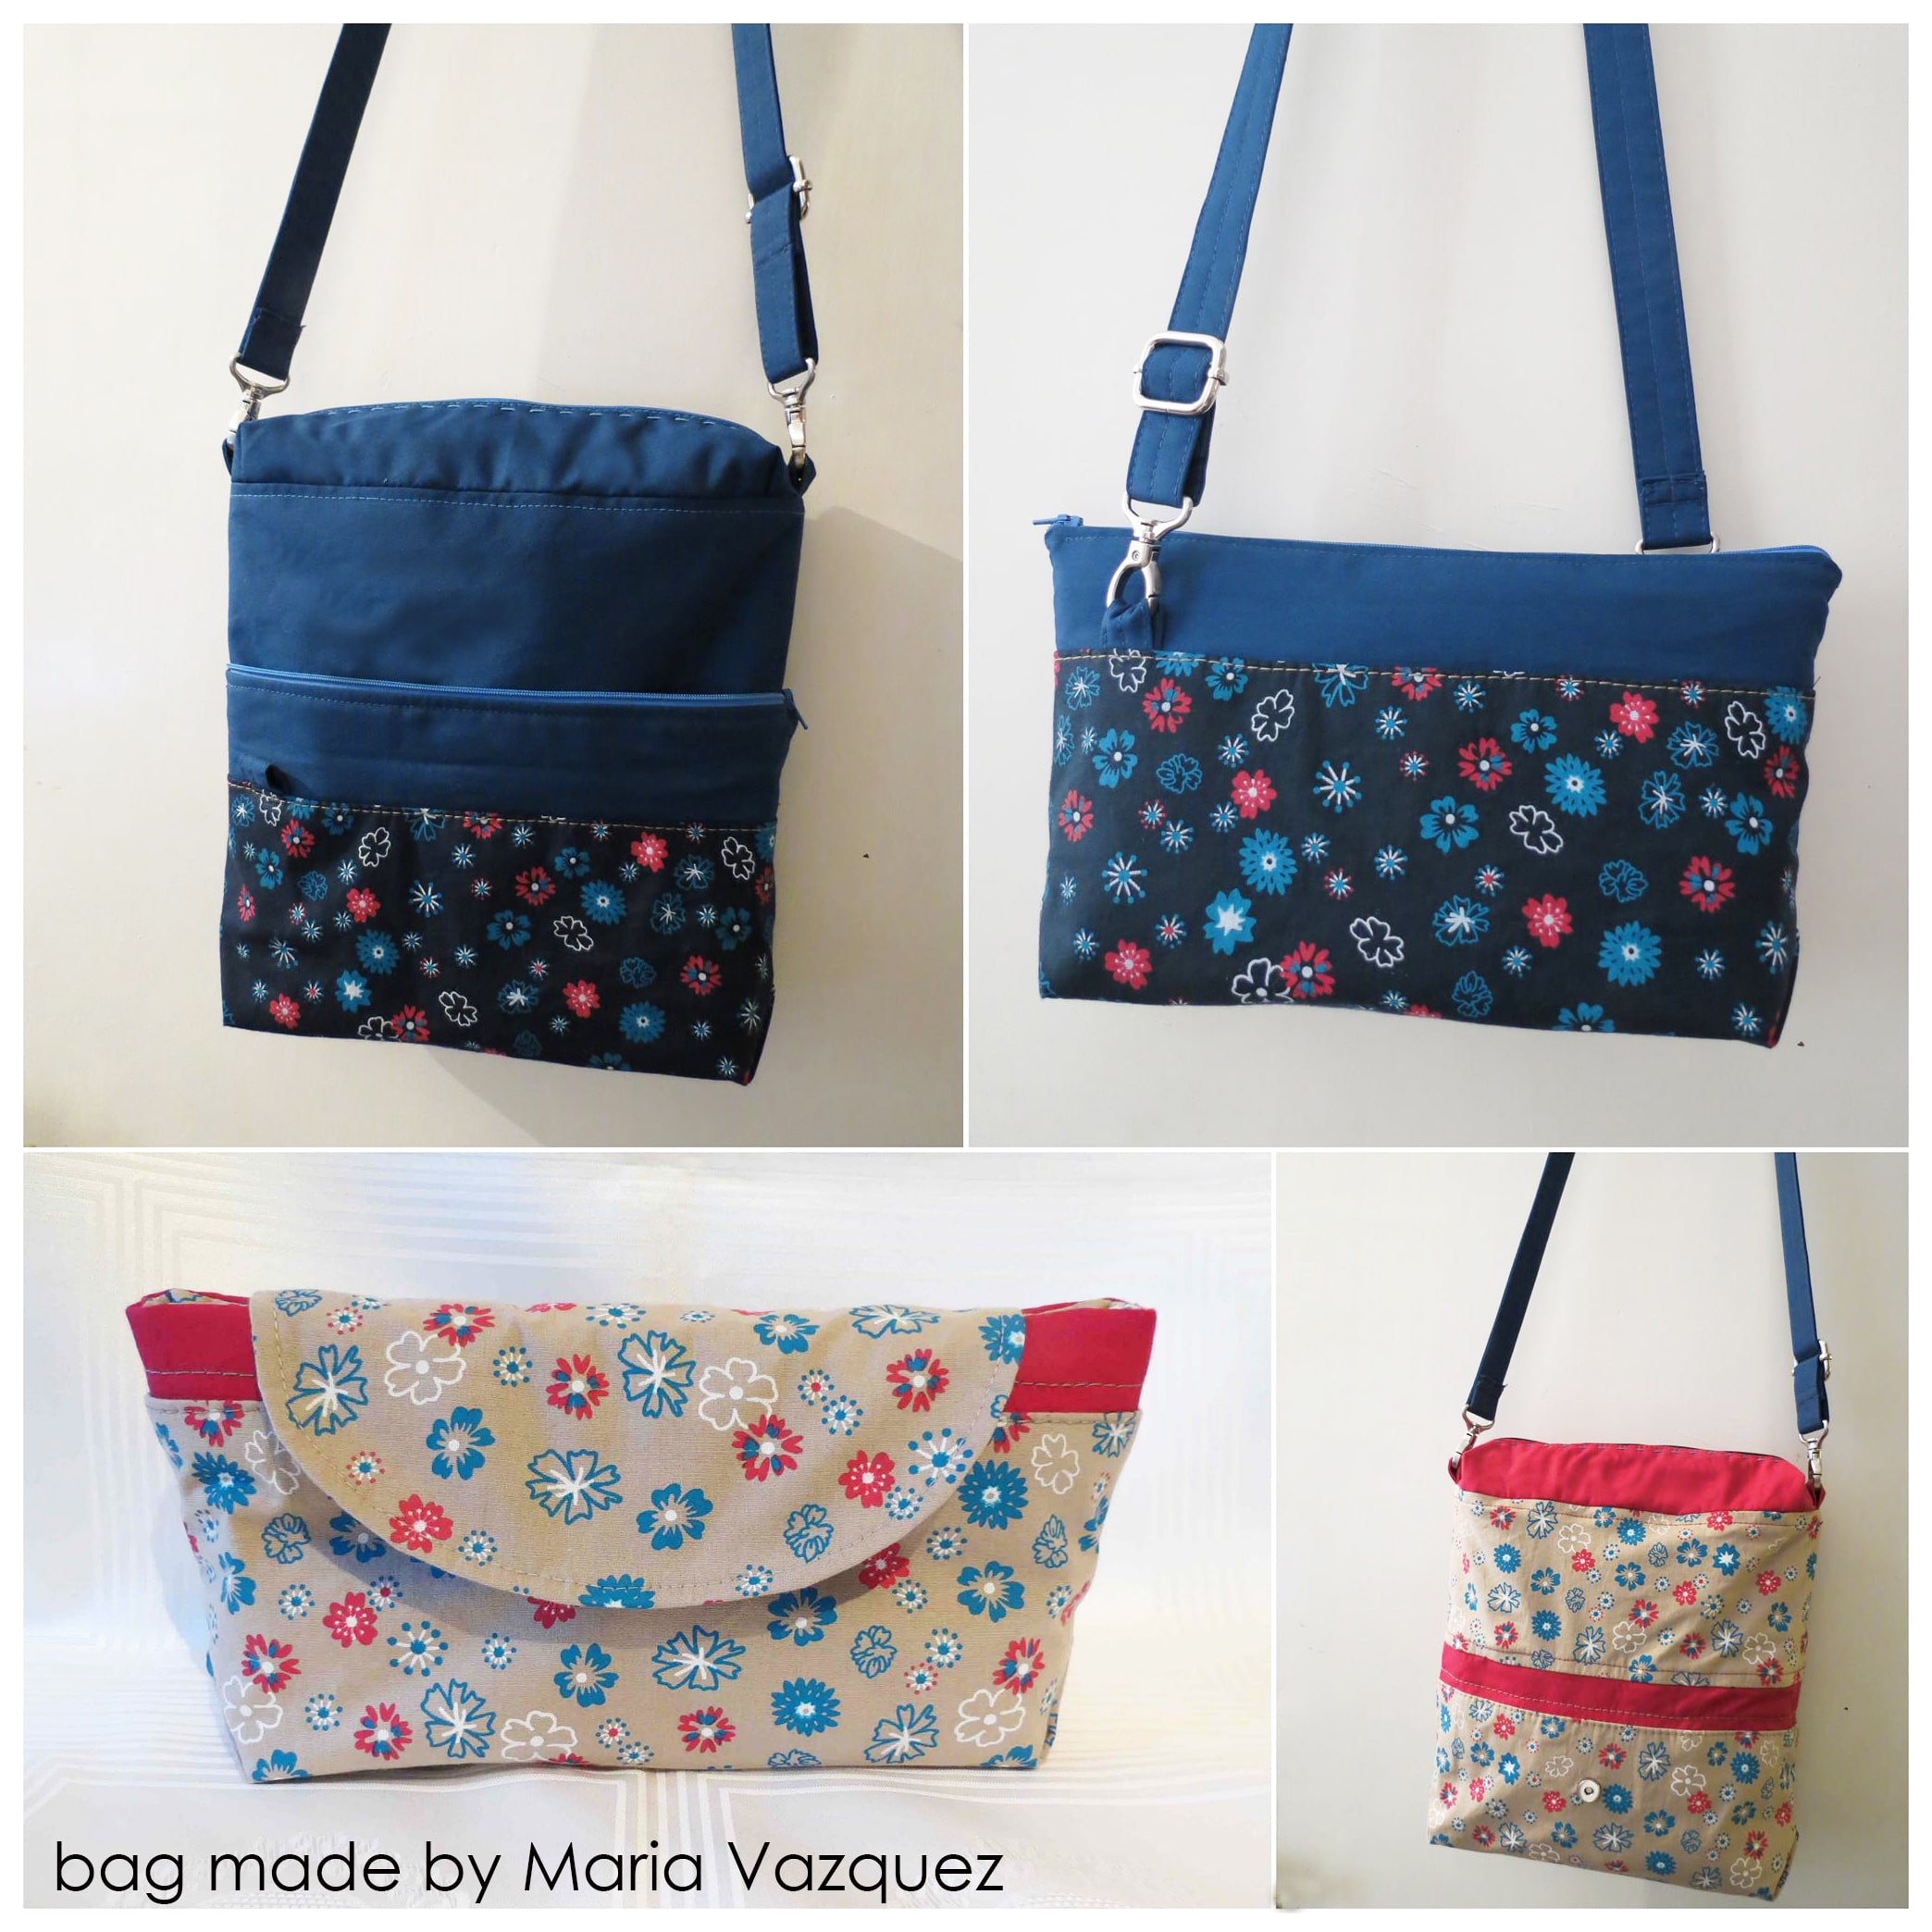 The Convertible Reversible Bag Sewing Pattern